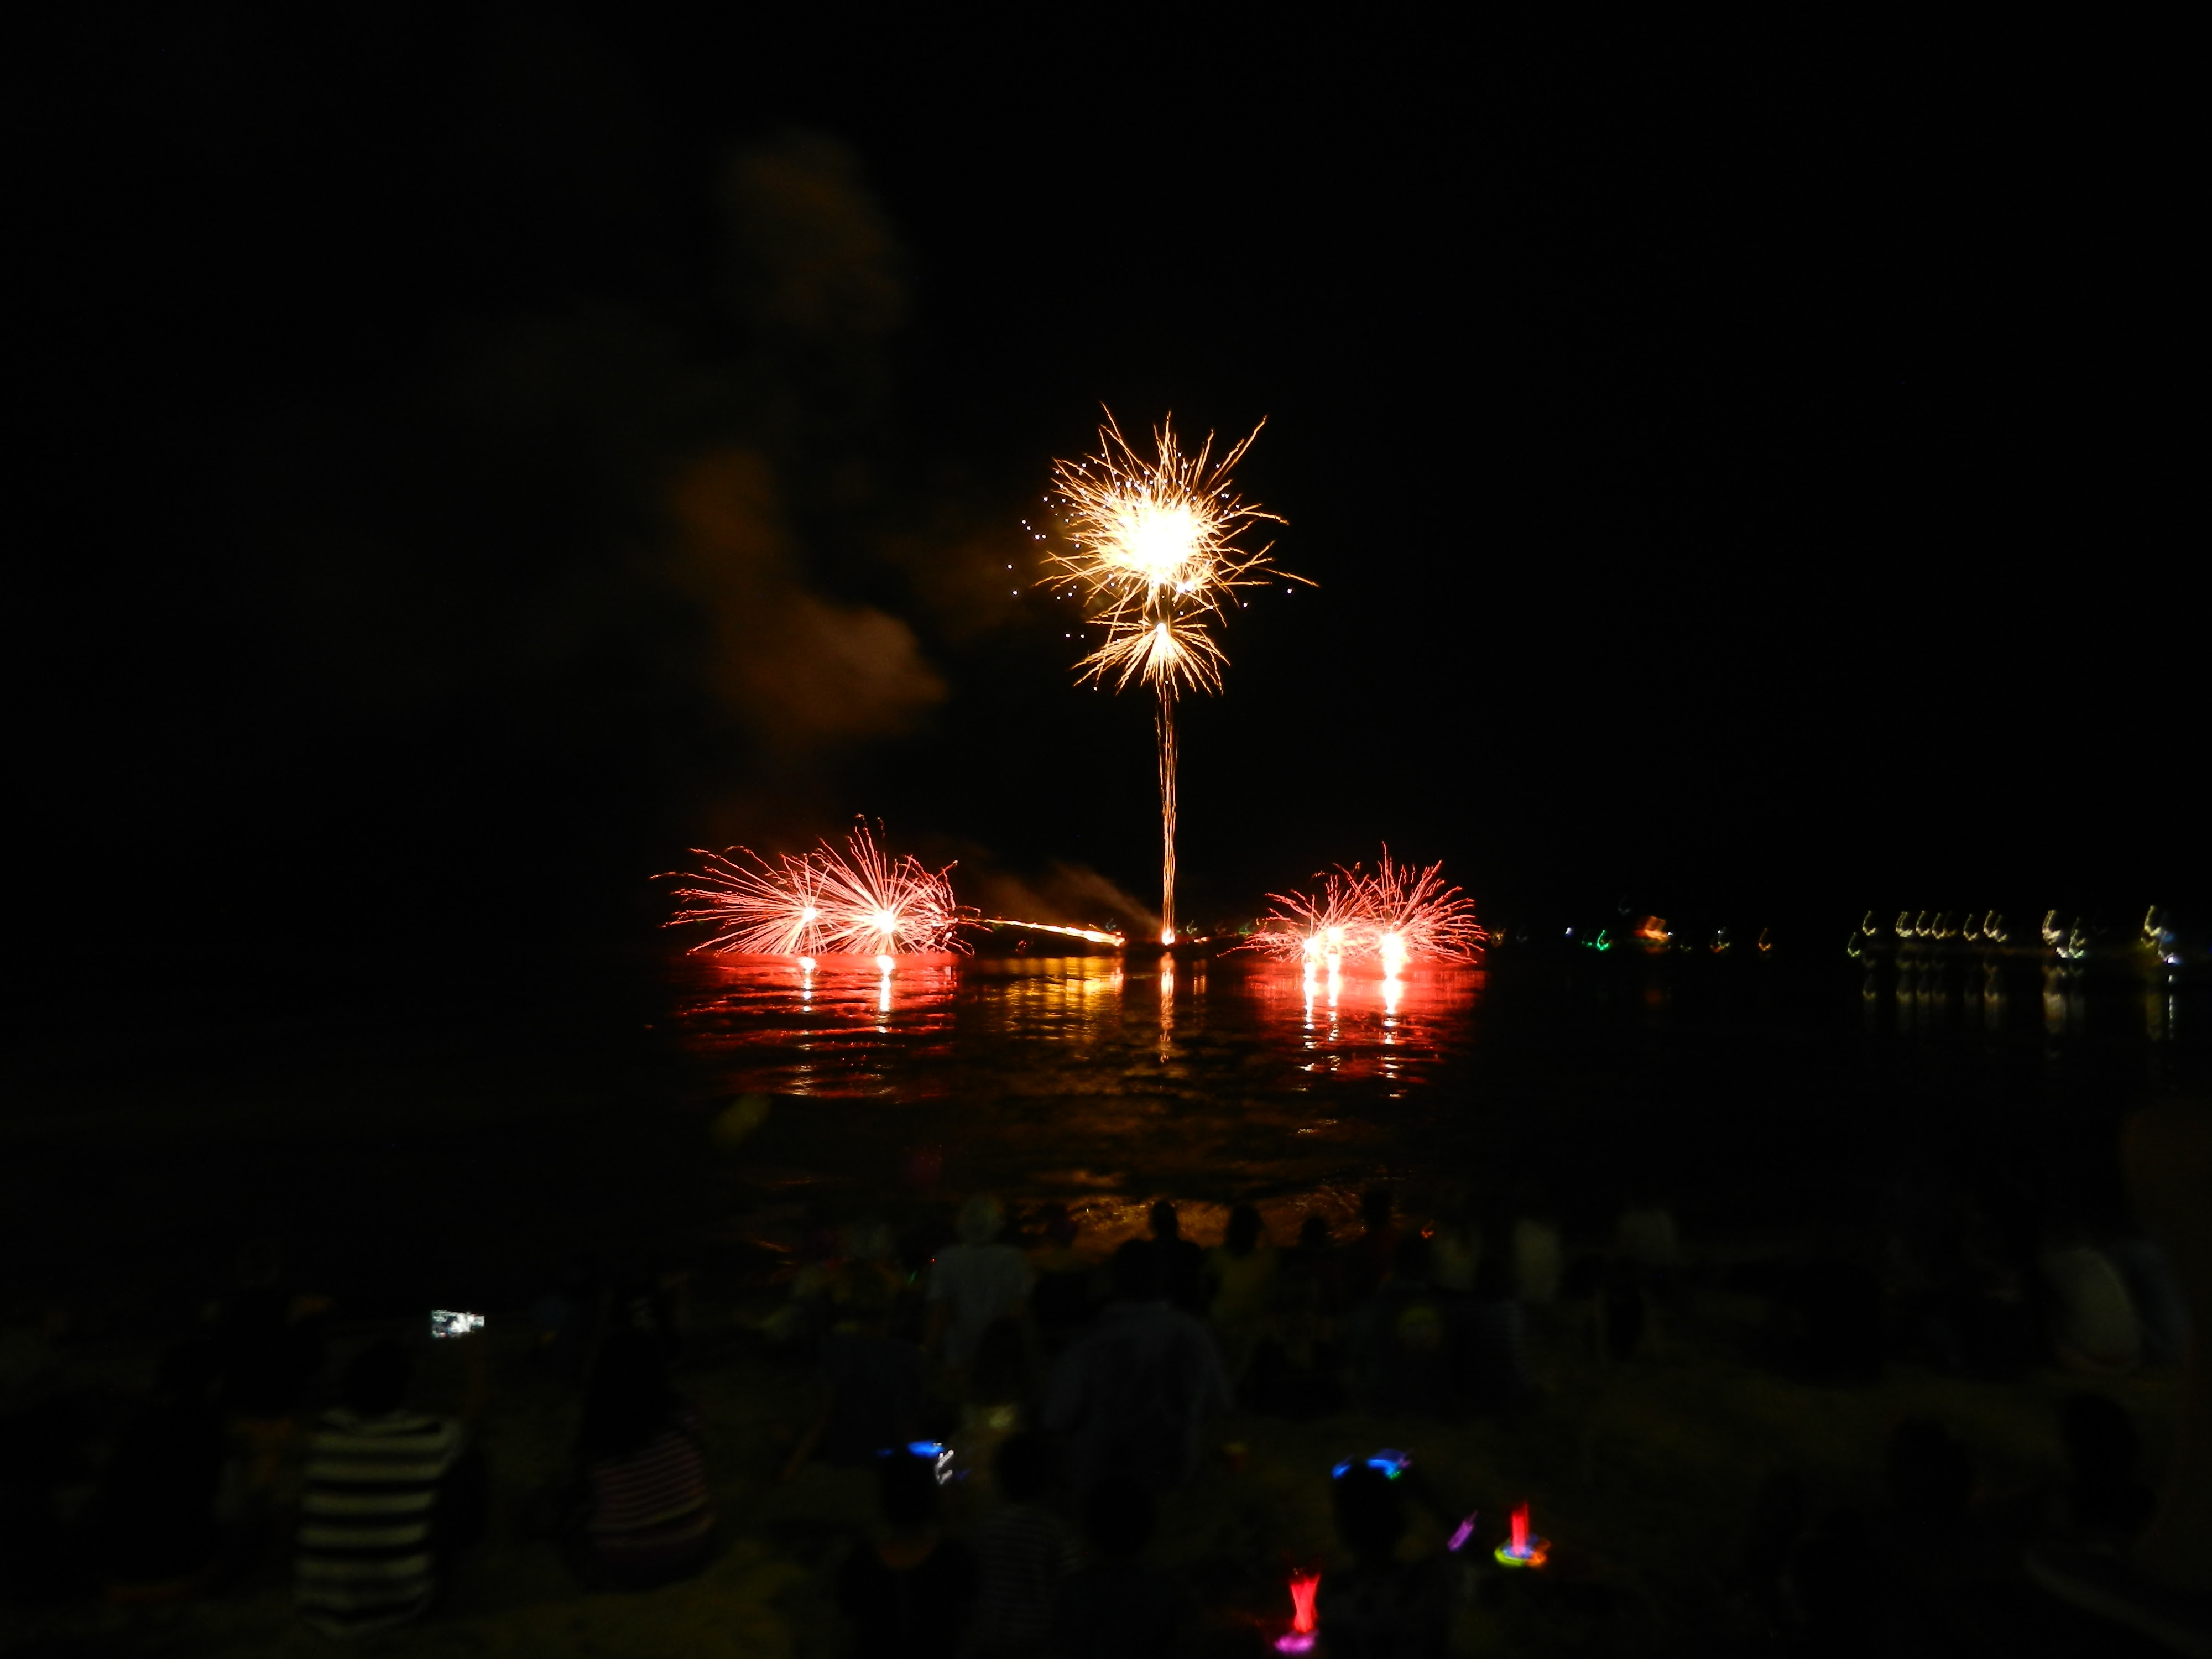 Two red fireworks lower on the horizon with one yellow firework high above.